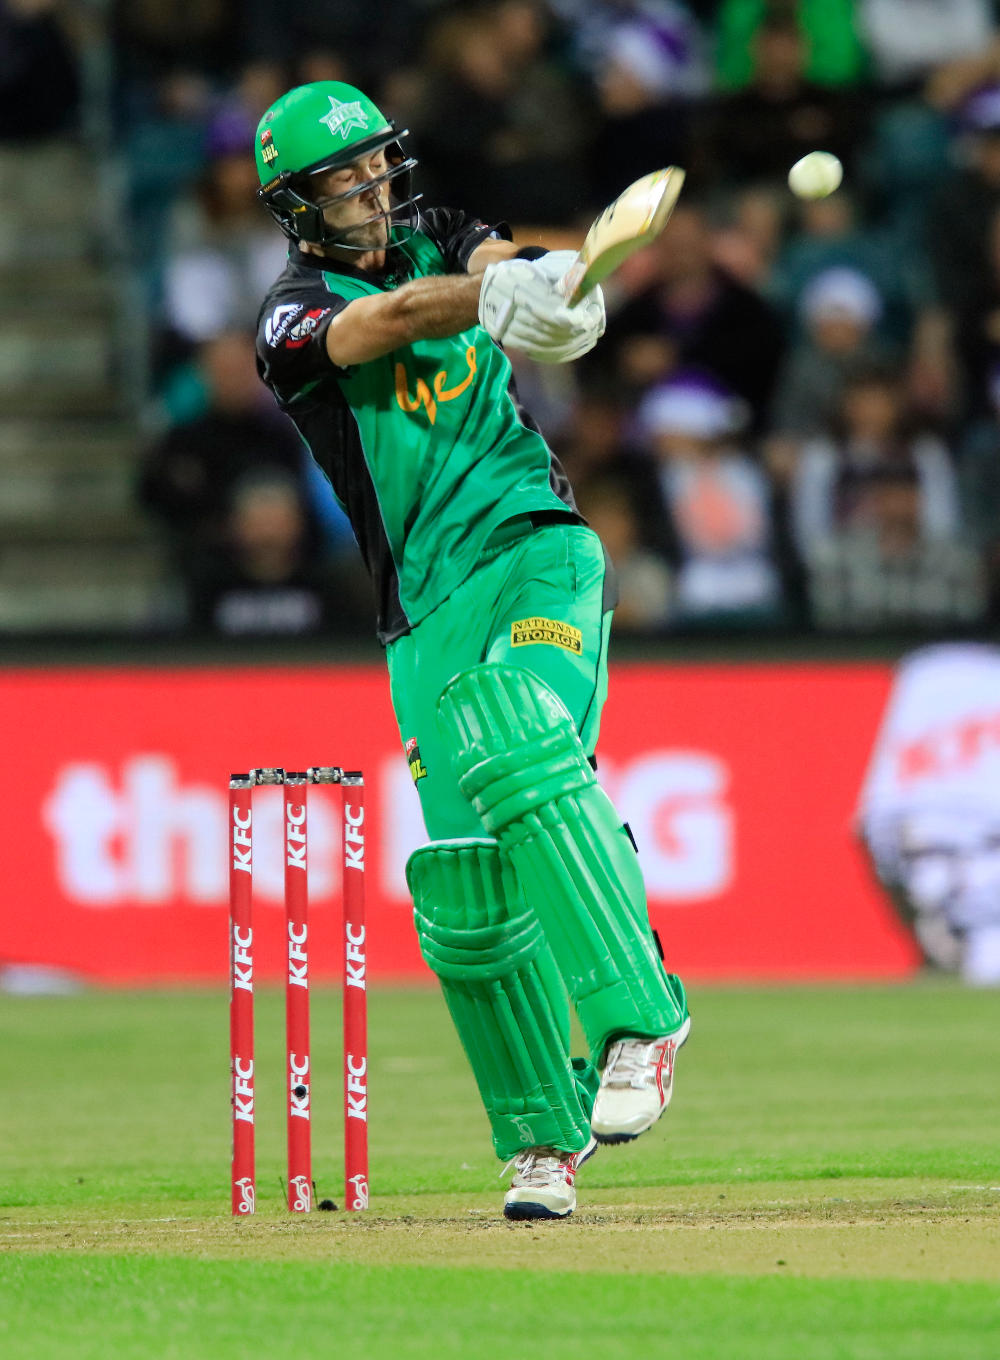 glenn-maxwell-melbourne-stars-big-bash-league-cricket-2016-tall